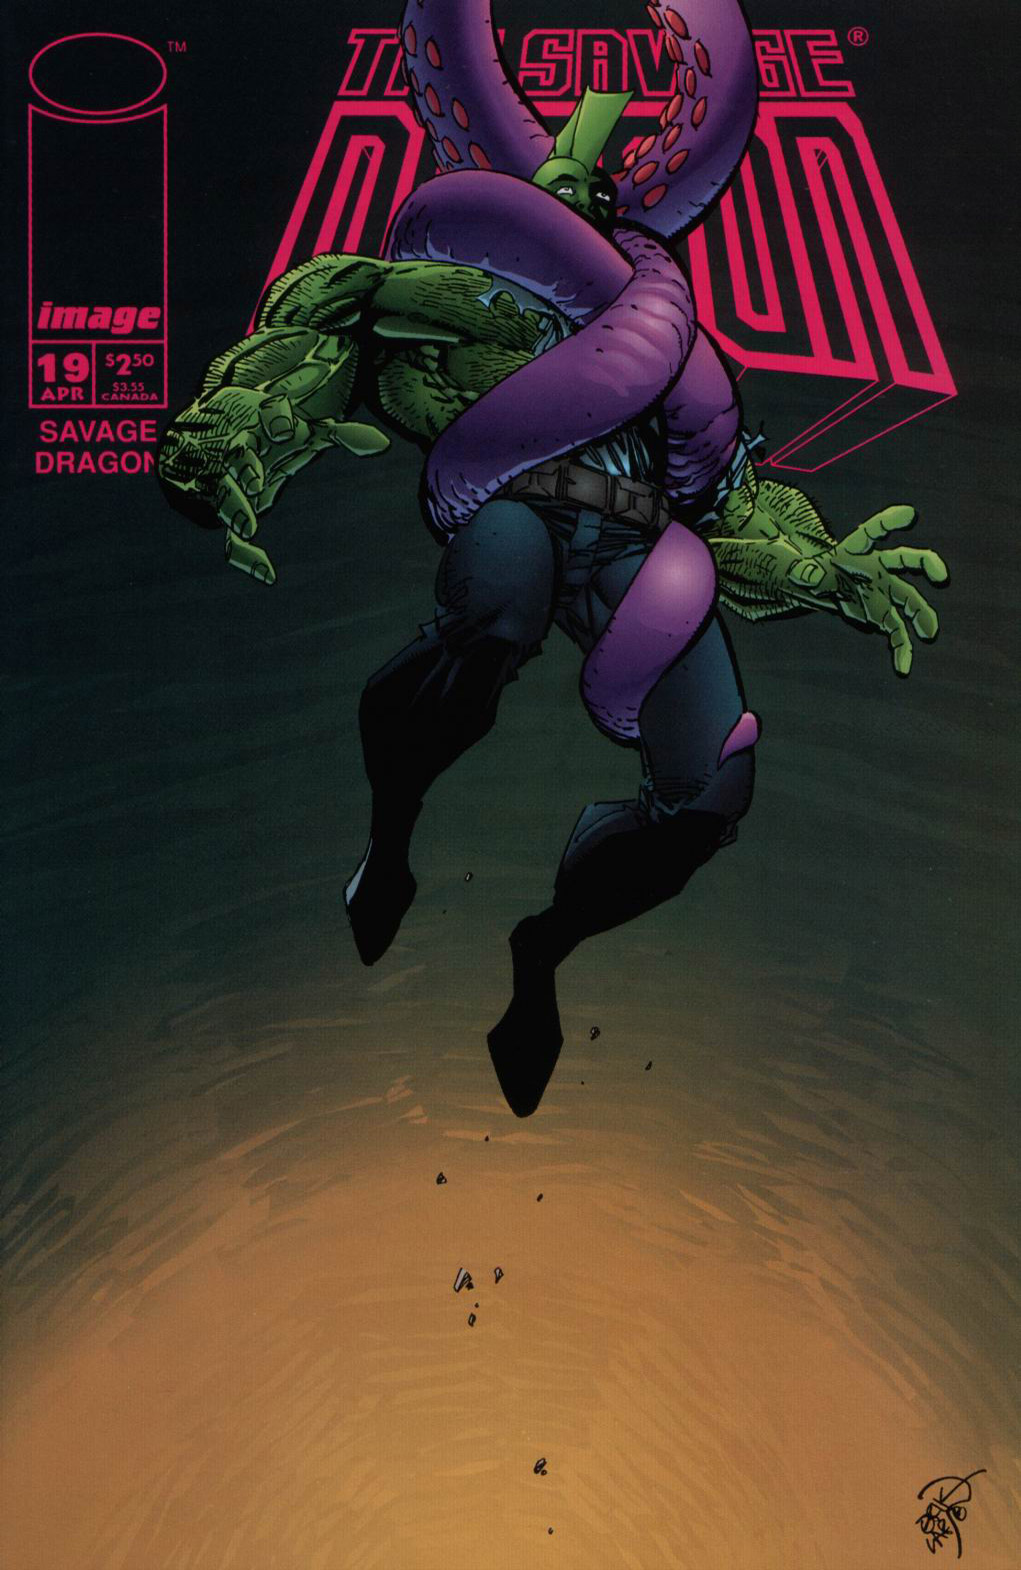 Cover Savage Dragon Vol.2 #19